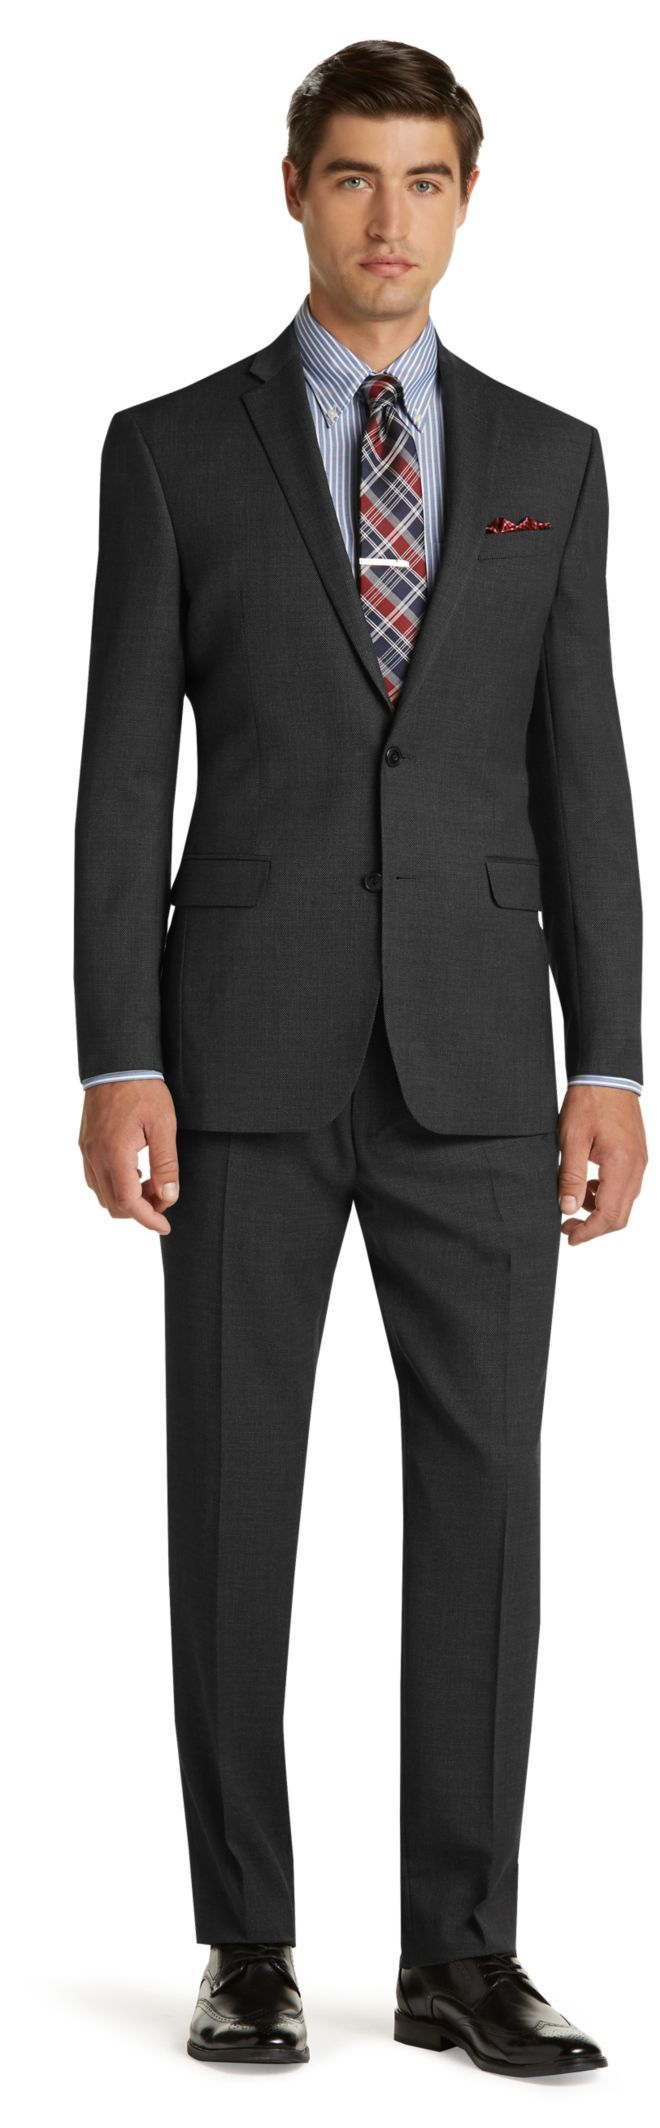 Braveman Men's Slim Suits (3-Piece). Big and Tall Sizes. Stylish slim-fit coat, vest, and unhemmed trousers can be worn in the office or on formal occasions. Groupon. Search Groupon Zip Code, Neighborhood, City Search. Sign In | /5(74).